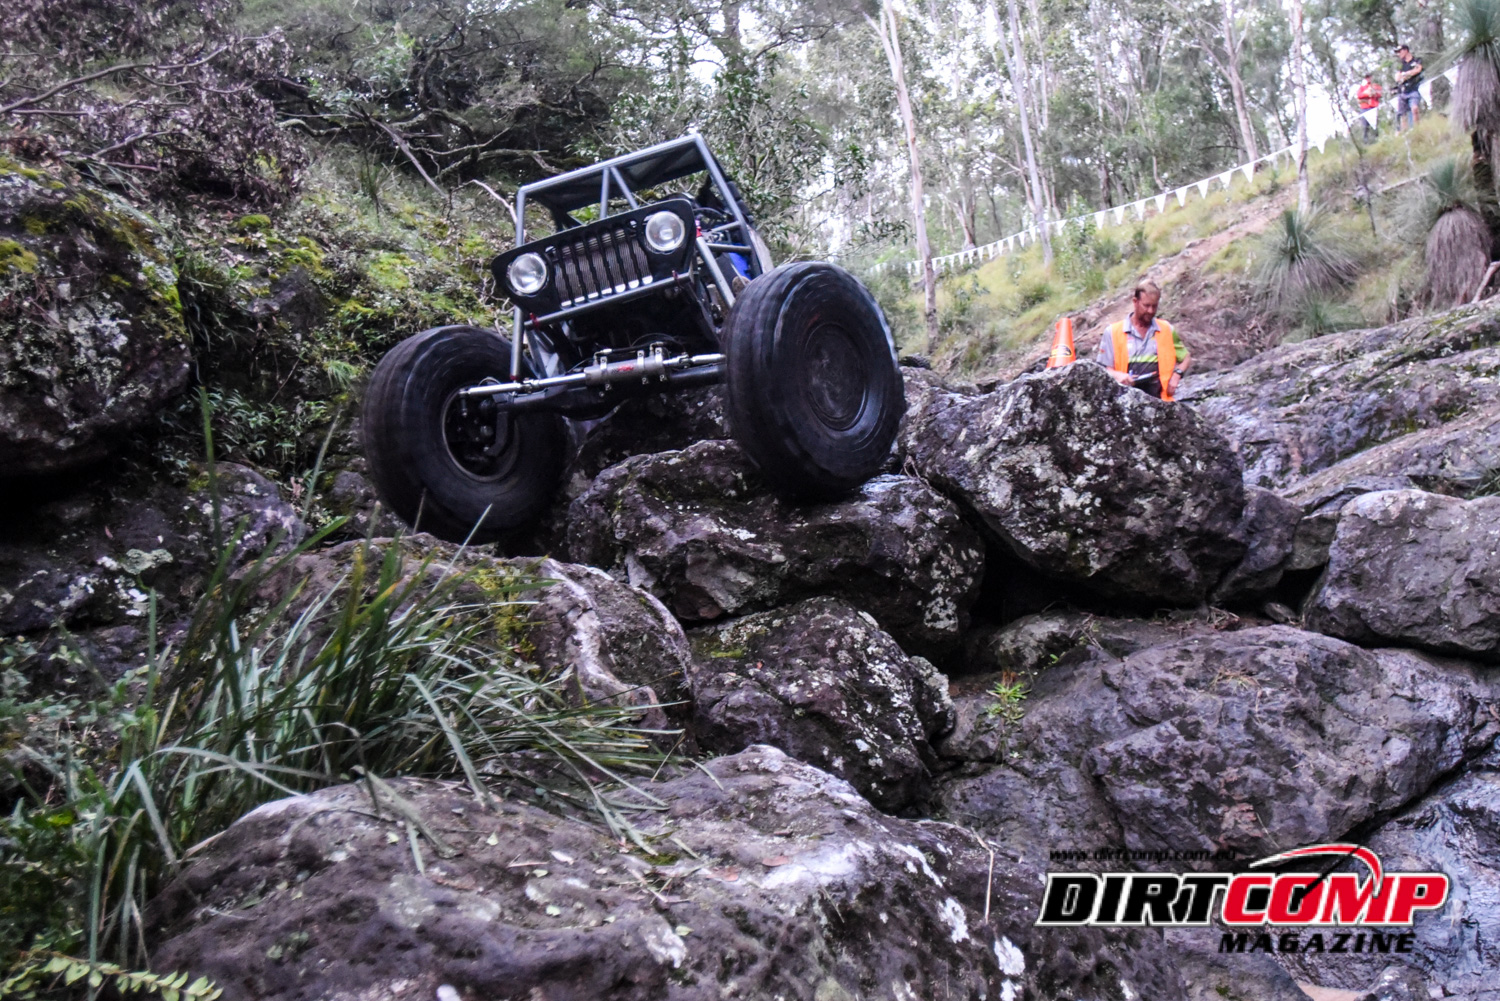 Look out for a feature on Steve John's Willys in Edition 49 of Dirtcomp